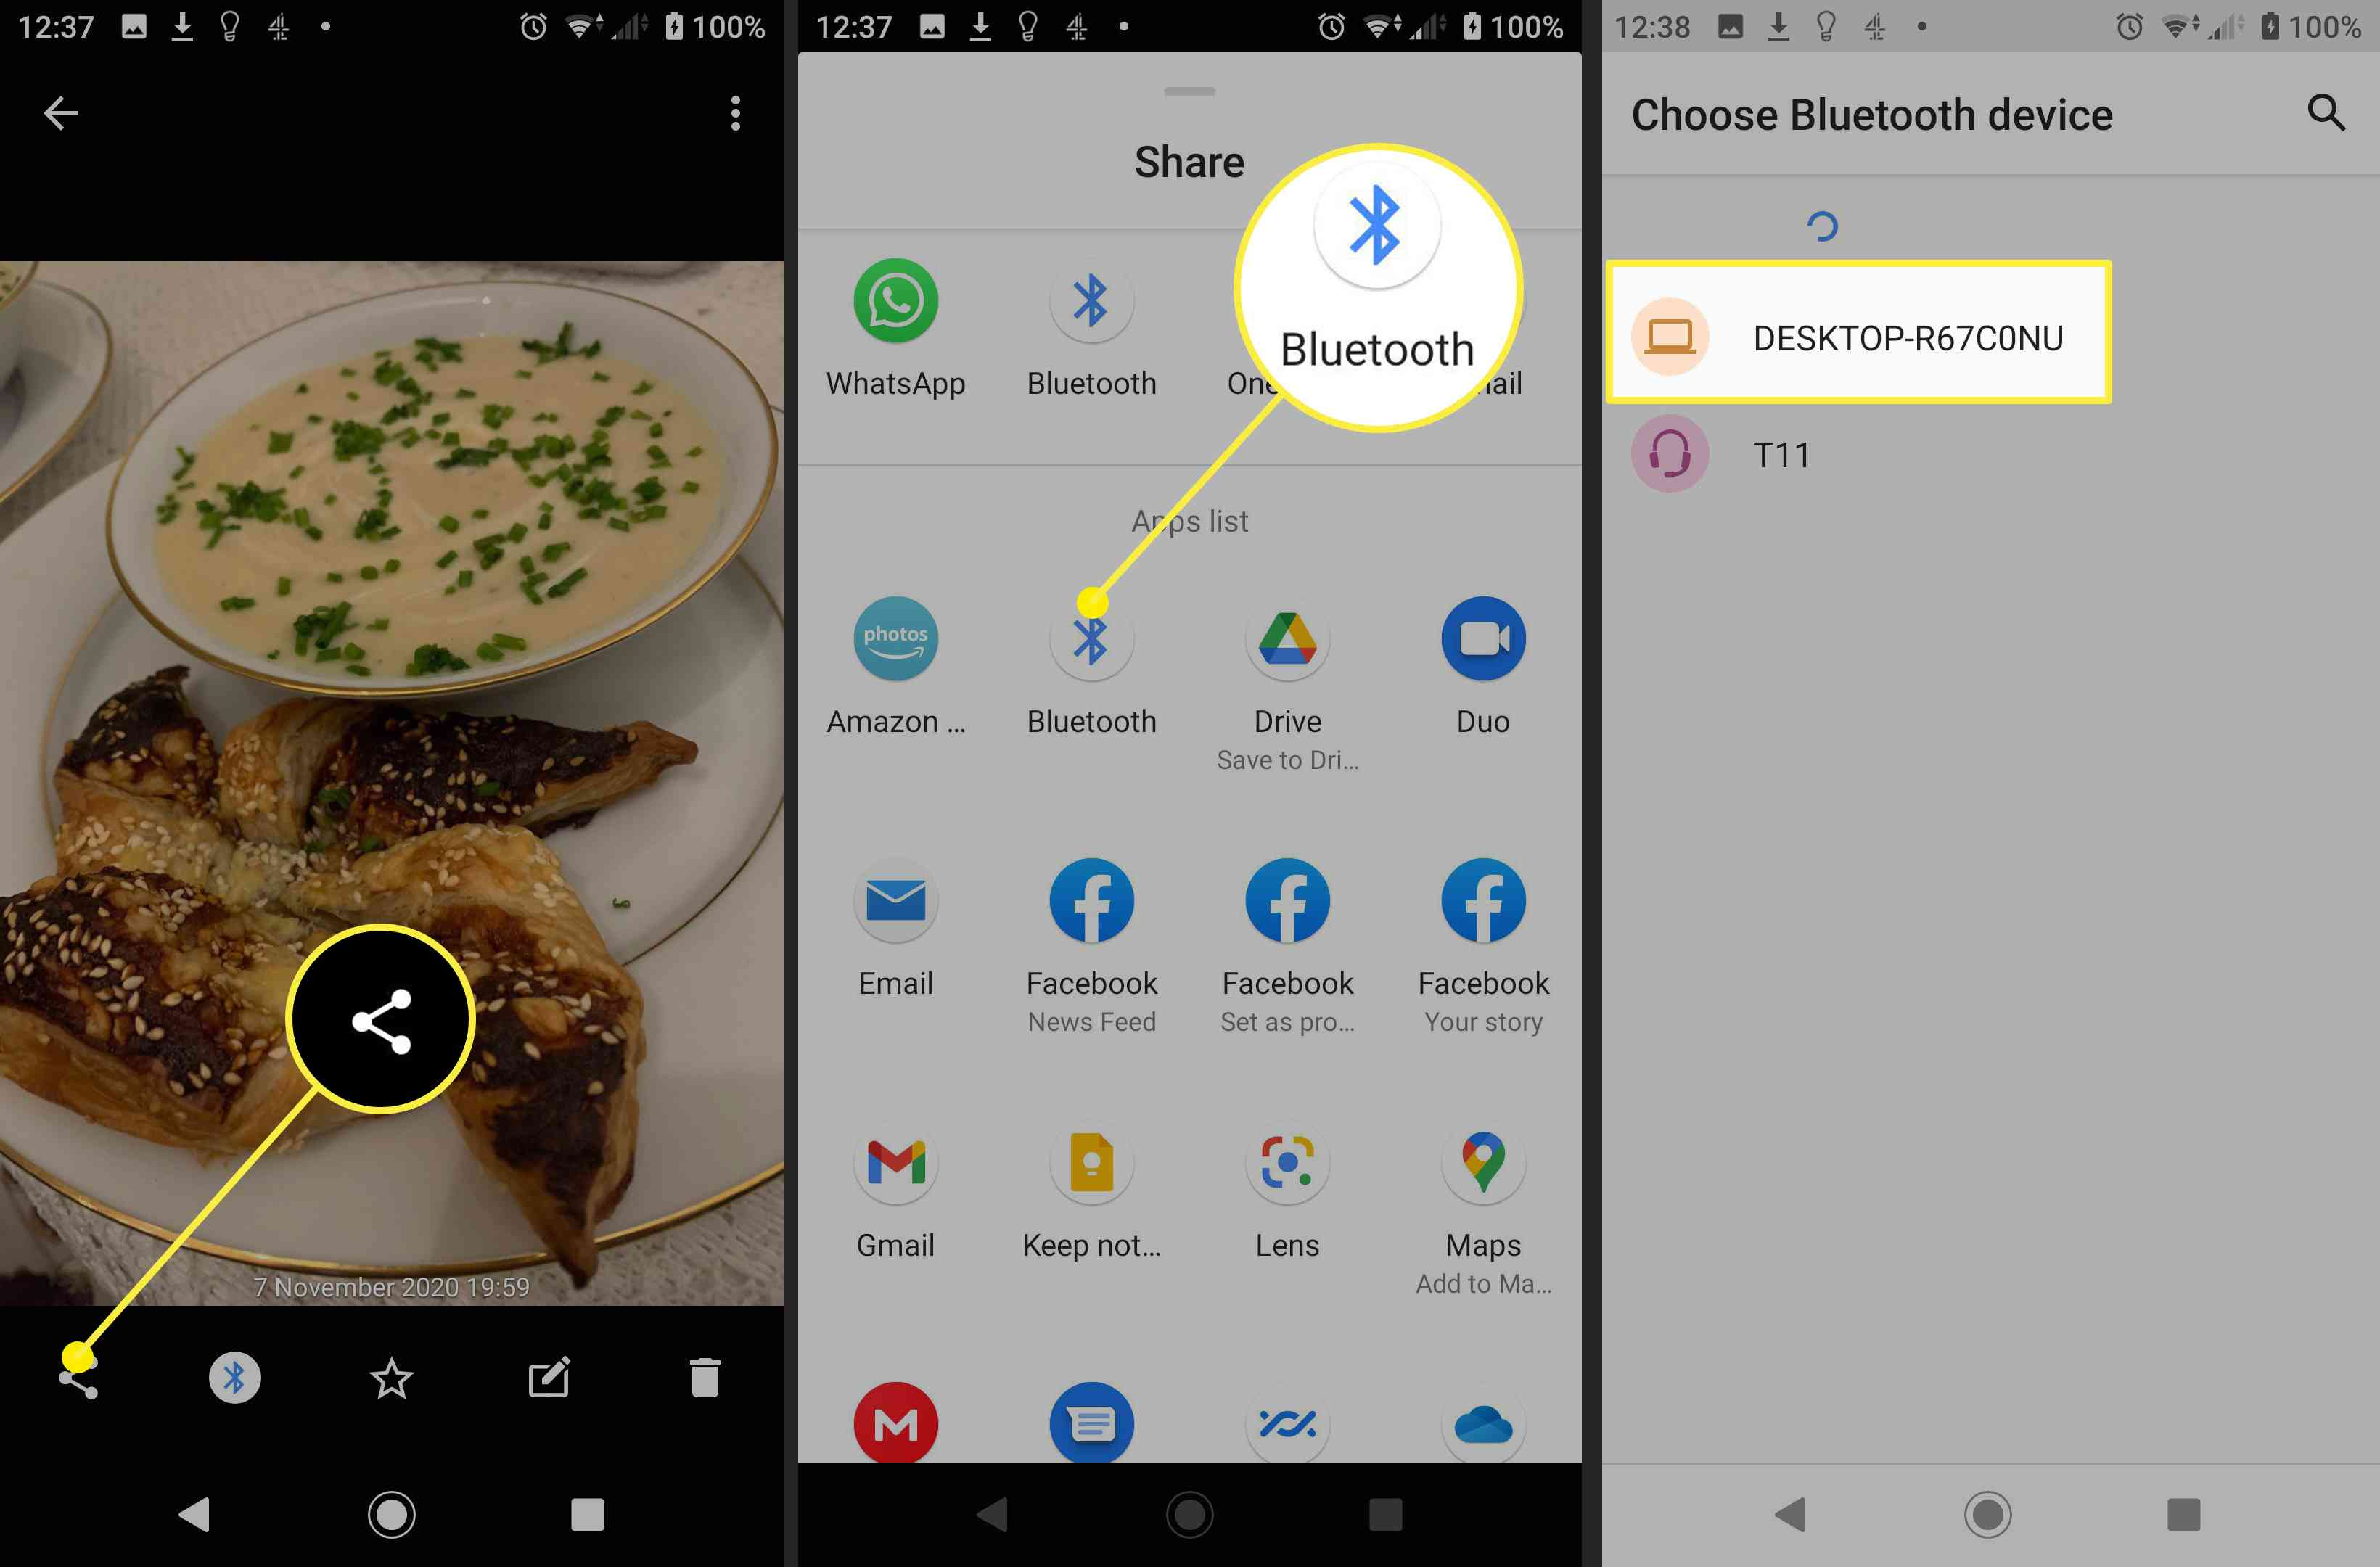 Screenshots of setting up a Bluetooth photo transfer between Android and a Mac.